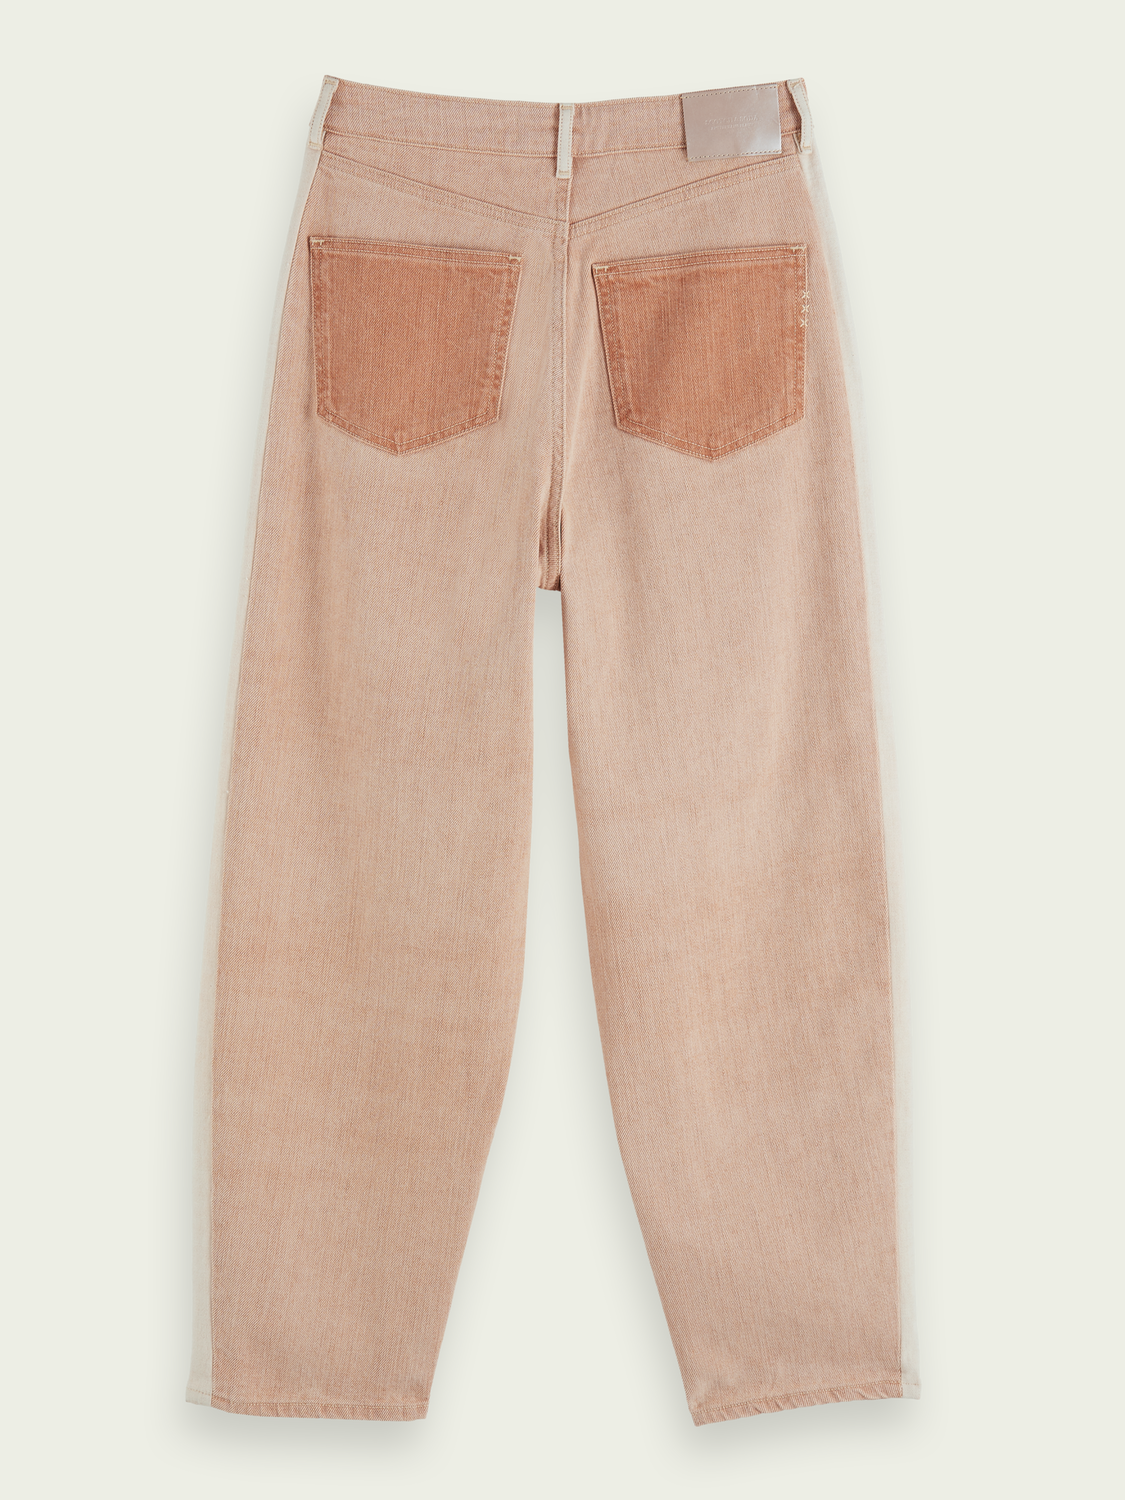 Damen High-Rise Balloon Leg Jeans – Rose Smoke